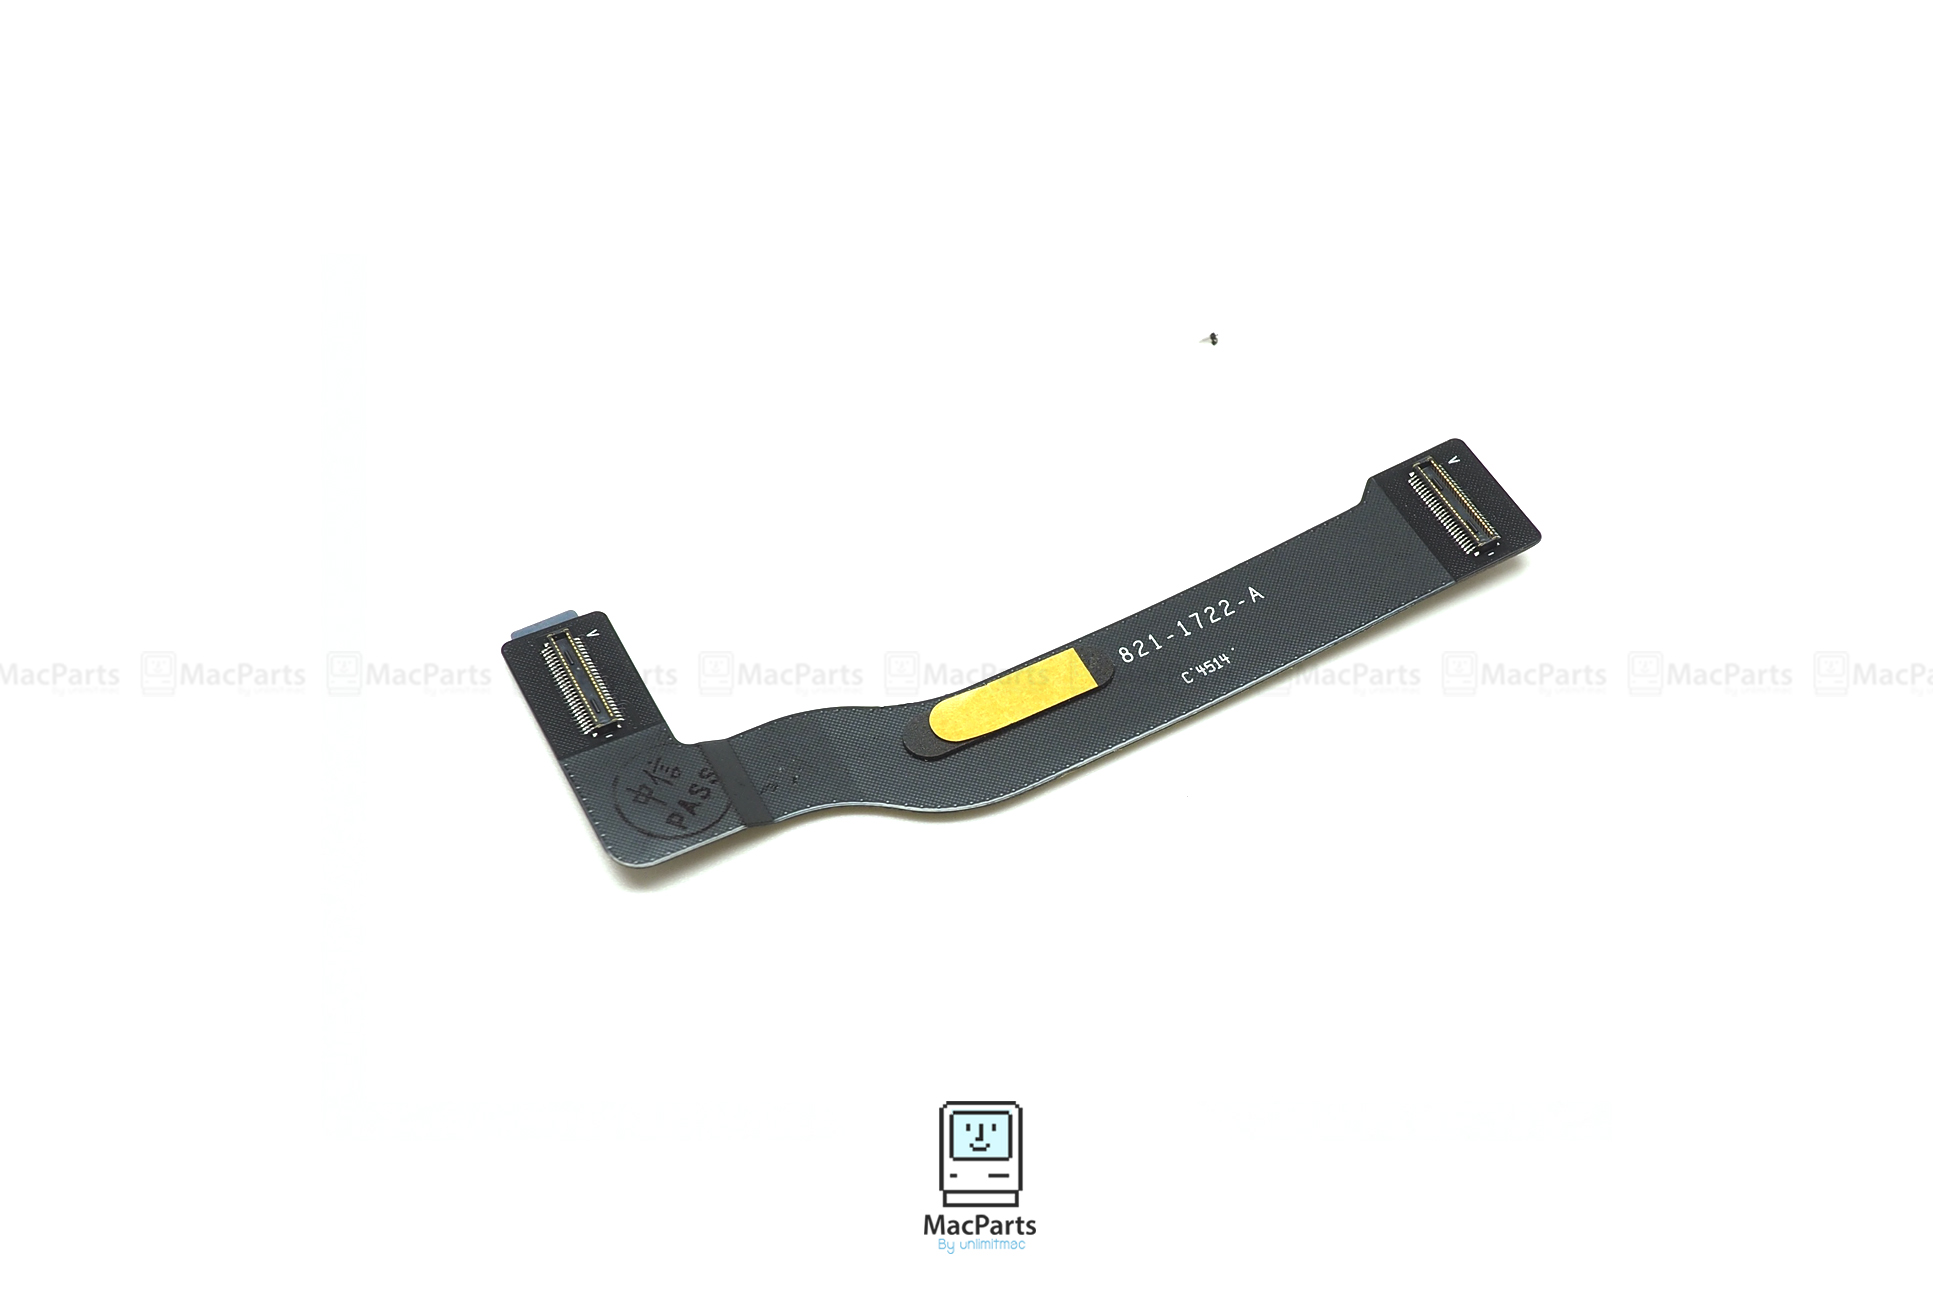 "923-0440 Flex Cable I/O Board MacBook Air 13""( Mid 2013 - 2016 ) (821-1722-A) A1466"